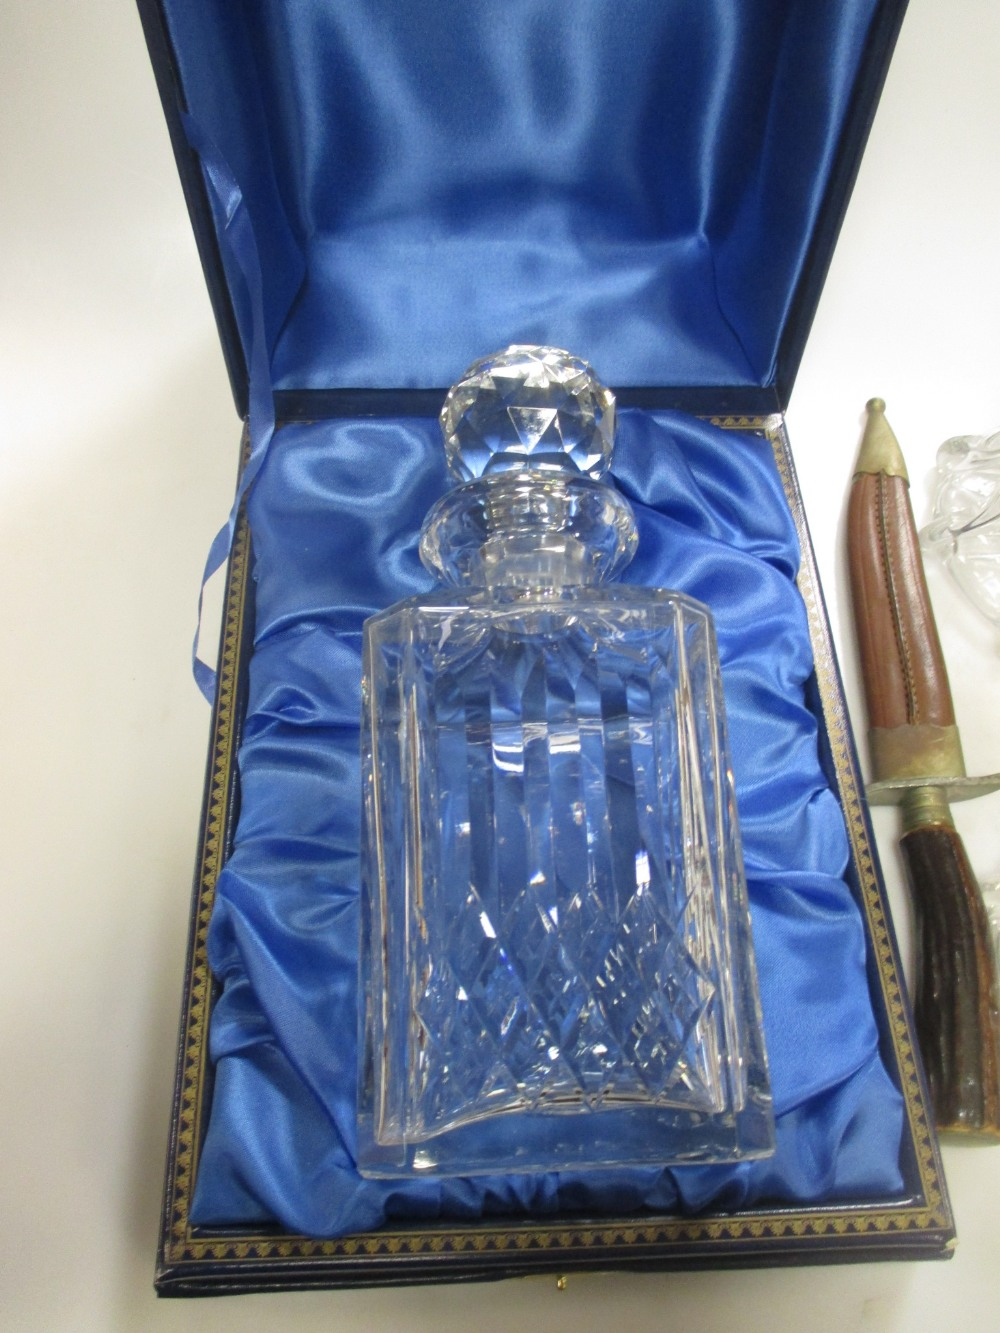 Lot 234 - A pair of early 20th century glass decanters and a modern Thomas Webb decanter and a souvenir